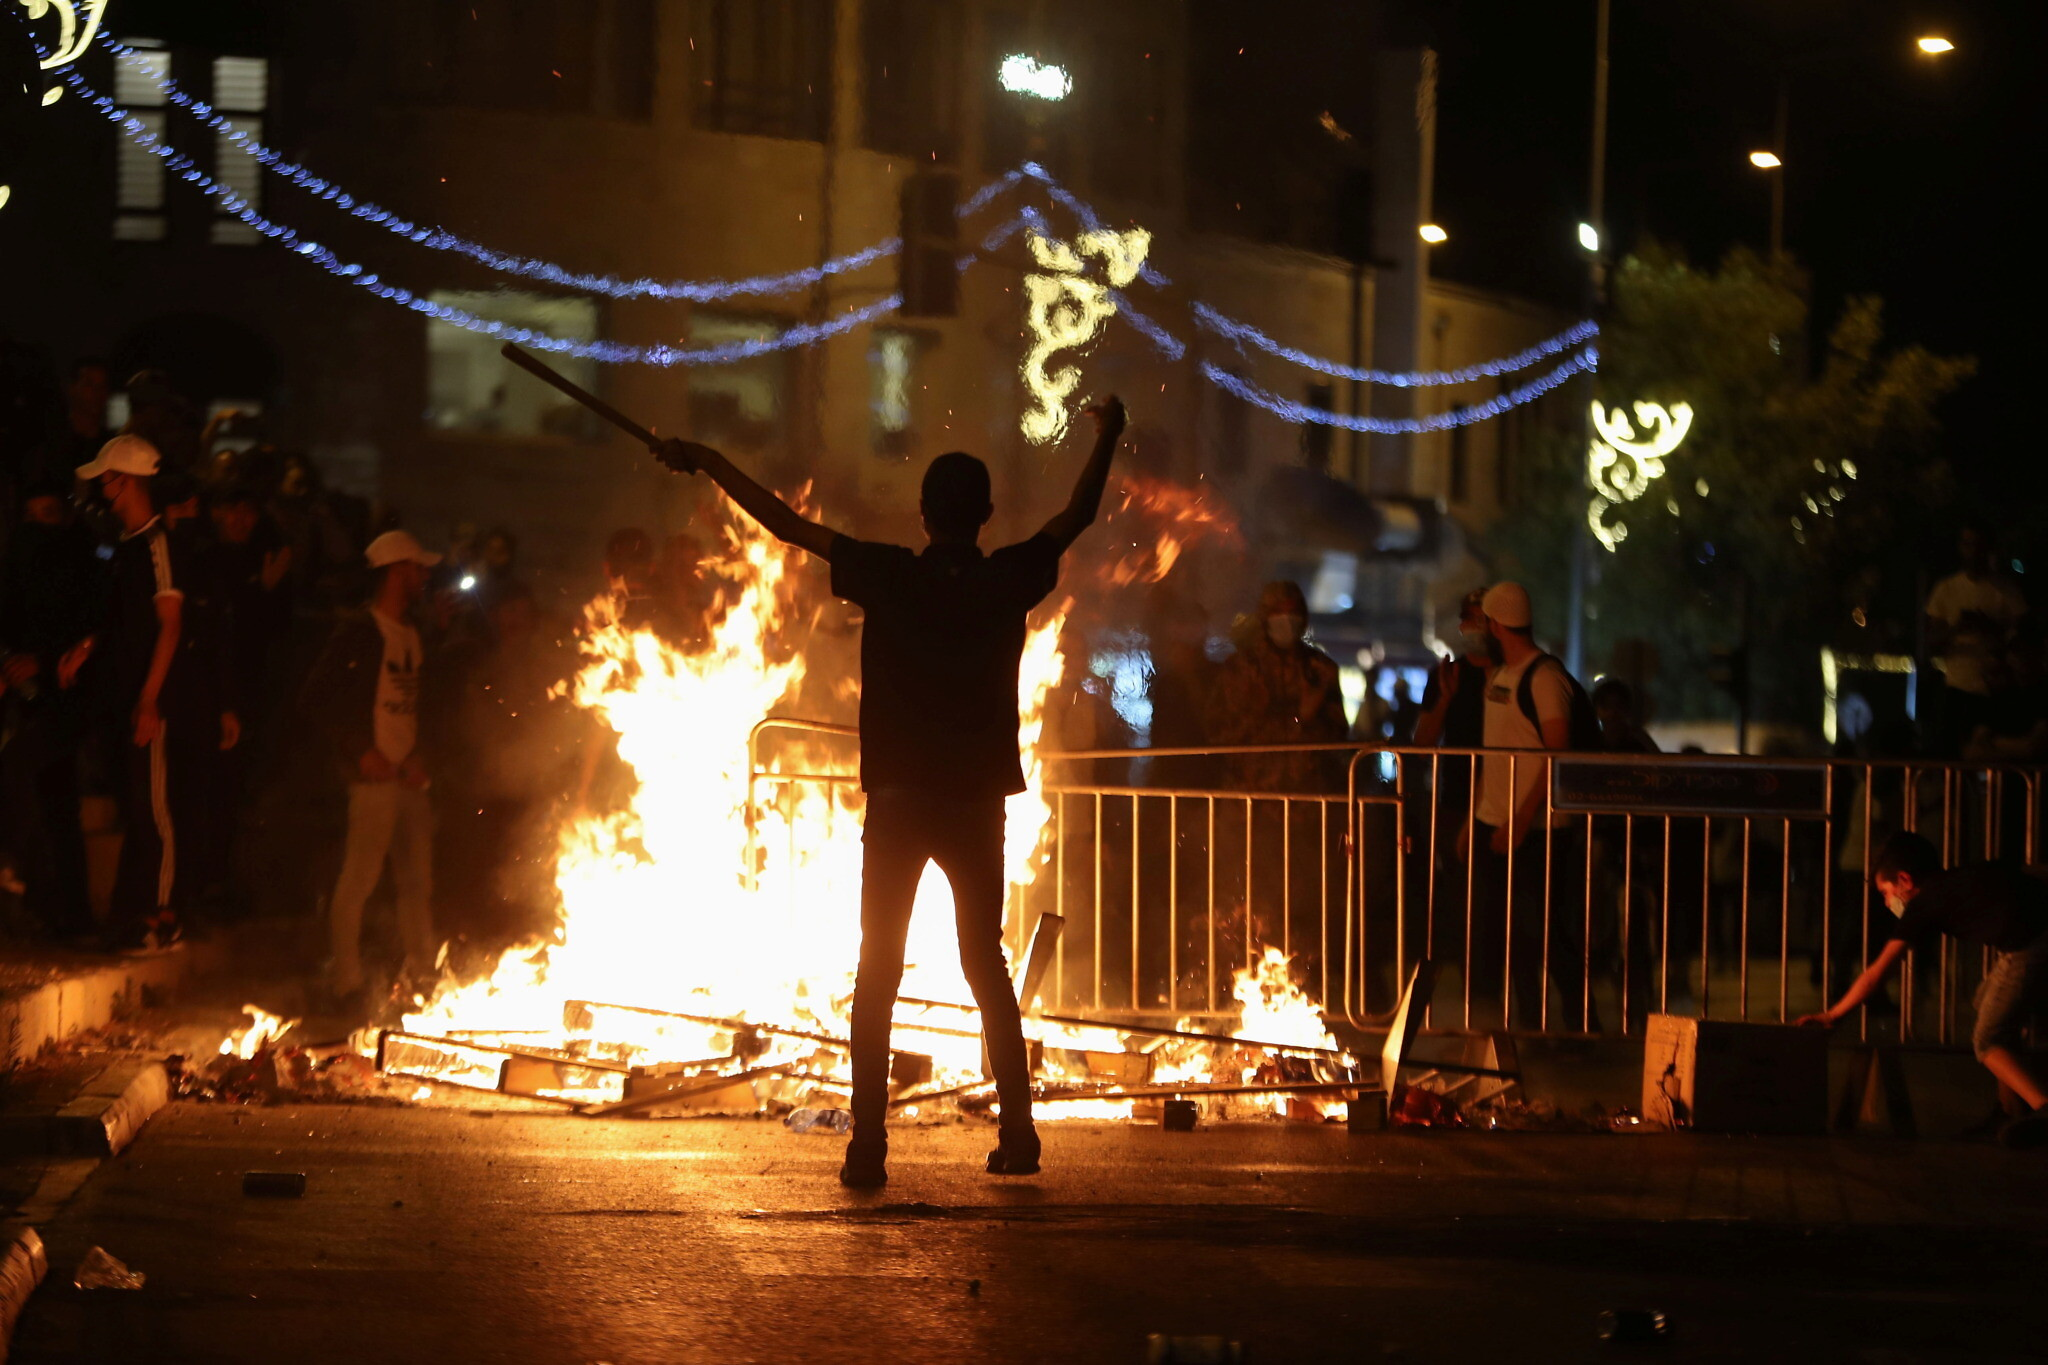 A tense Ramadan for families in Jerusalem as clashes continue